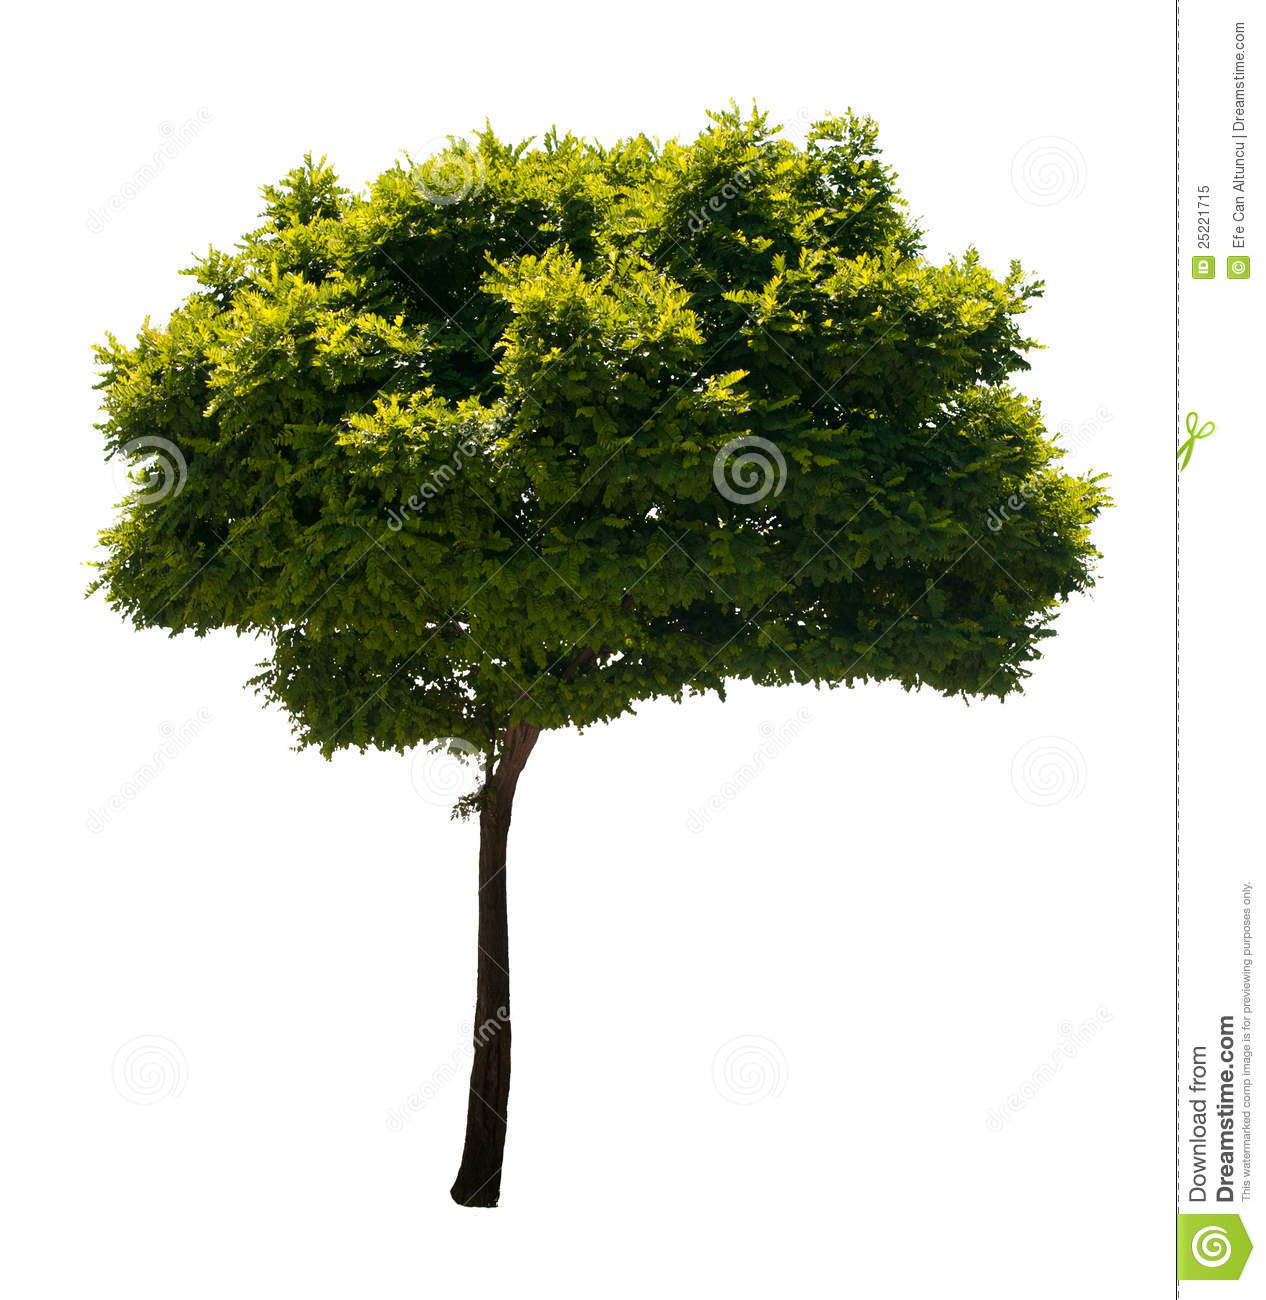 Photo of a tree, isolated on white background. PNG file with full ...